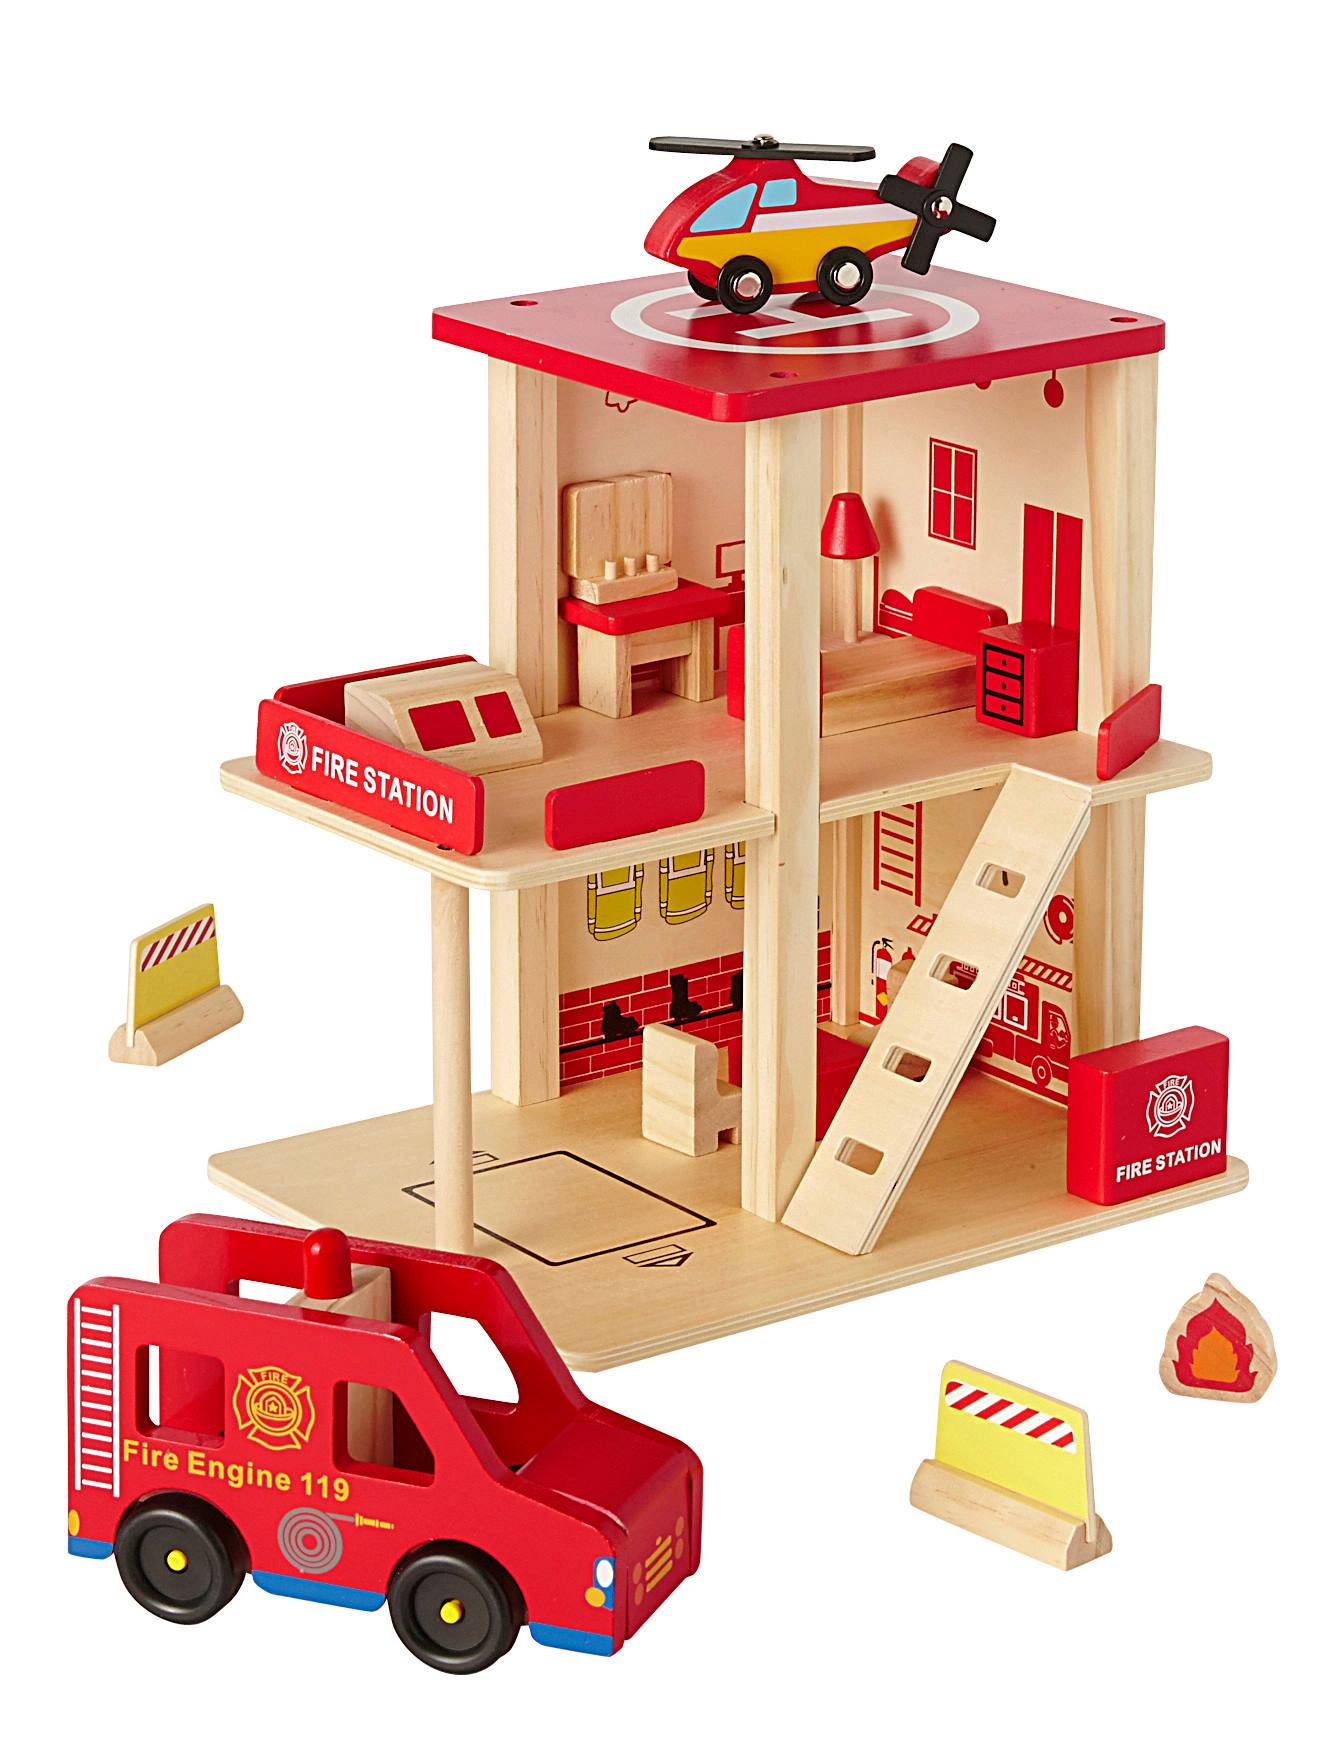 Wooden Naturegiocattolo Station Fire Department Red Ibfv6gym7Y